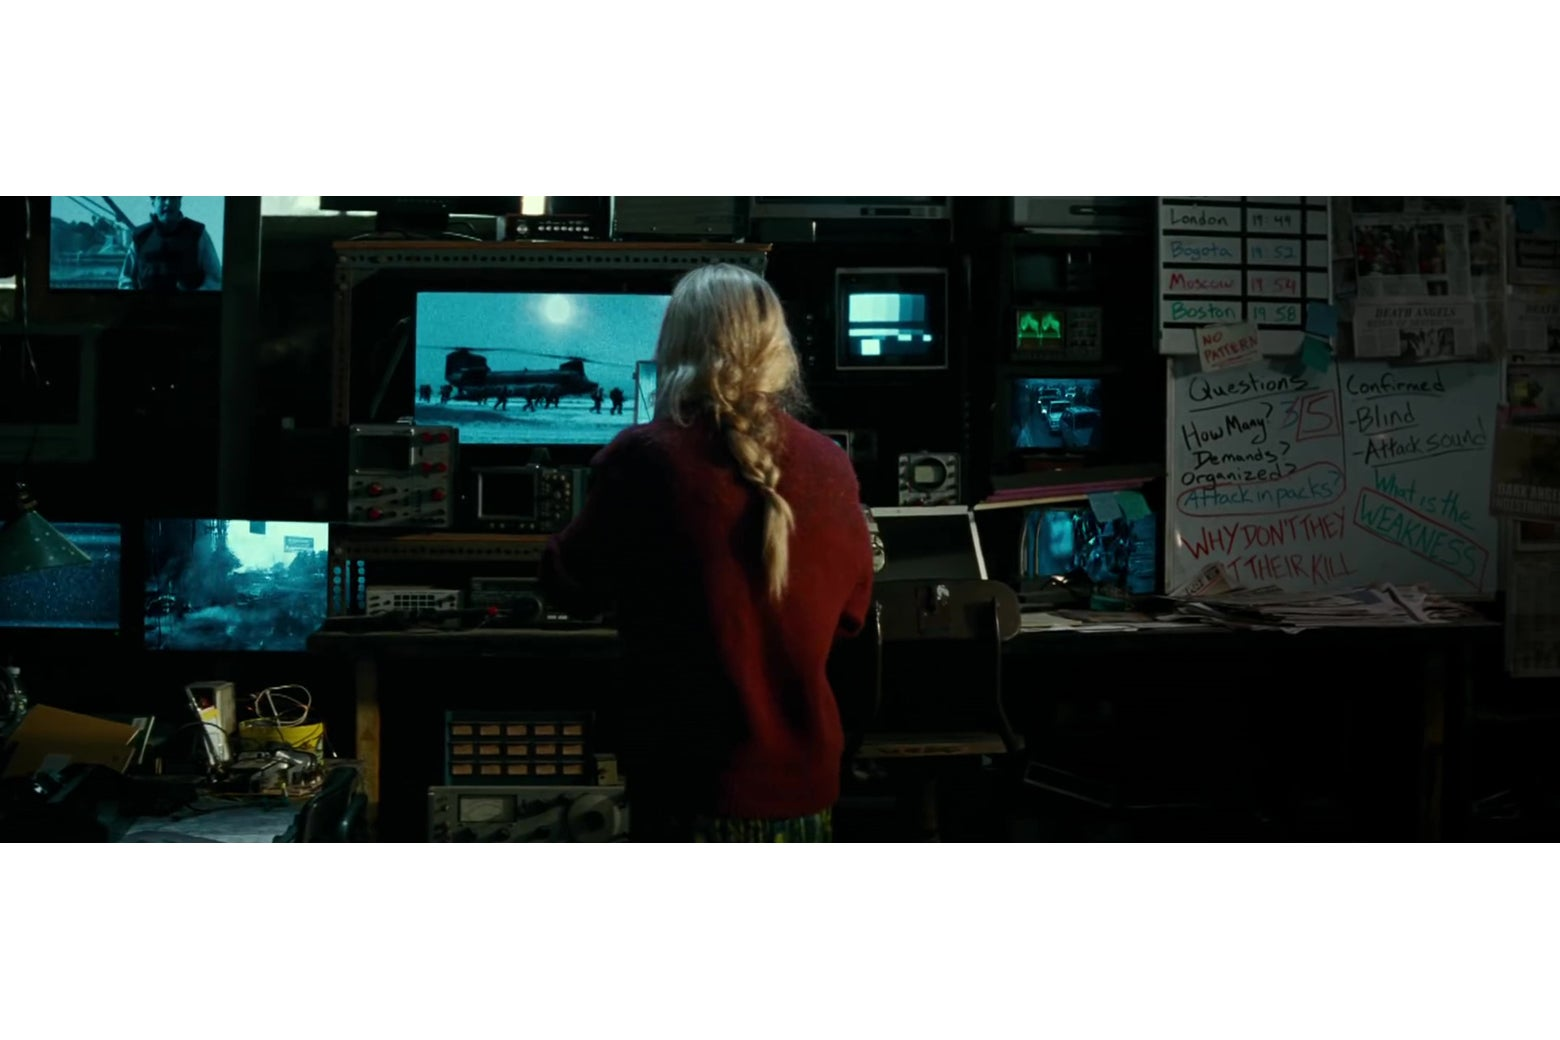 Emily Blunt standing in front of crazy scrawled whiteboard notes about the creatures attacking.